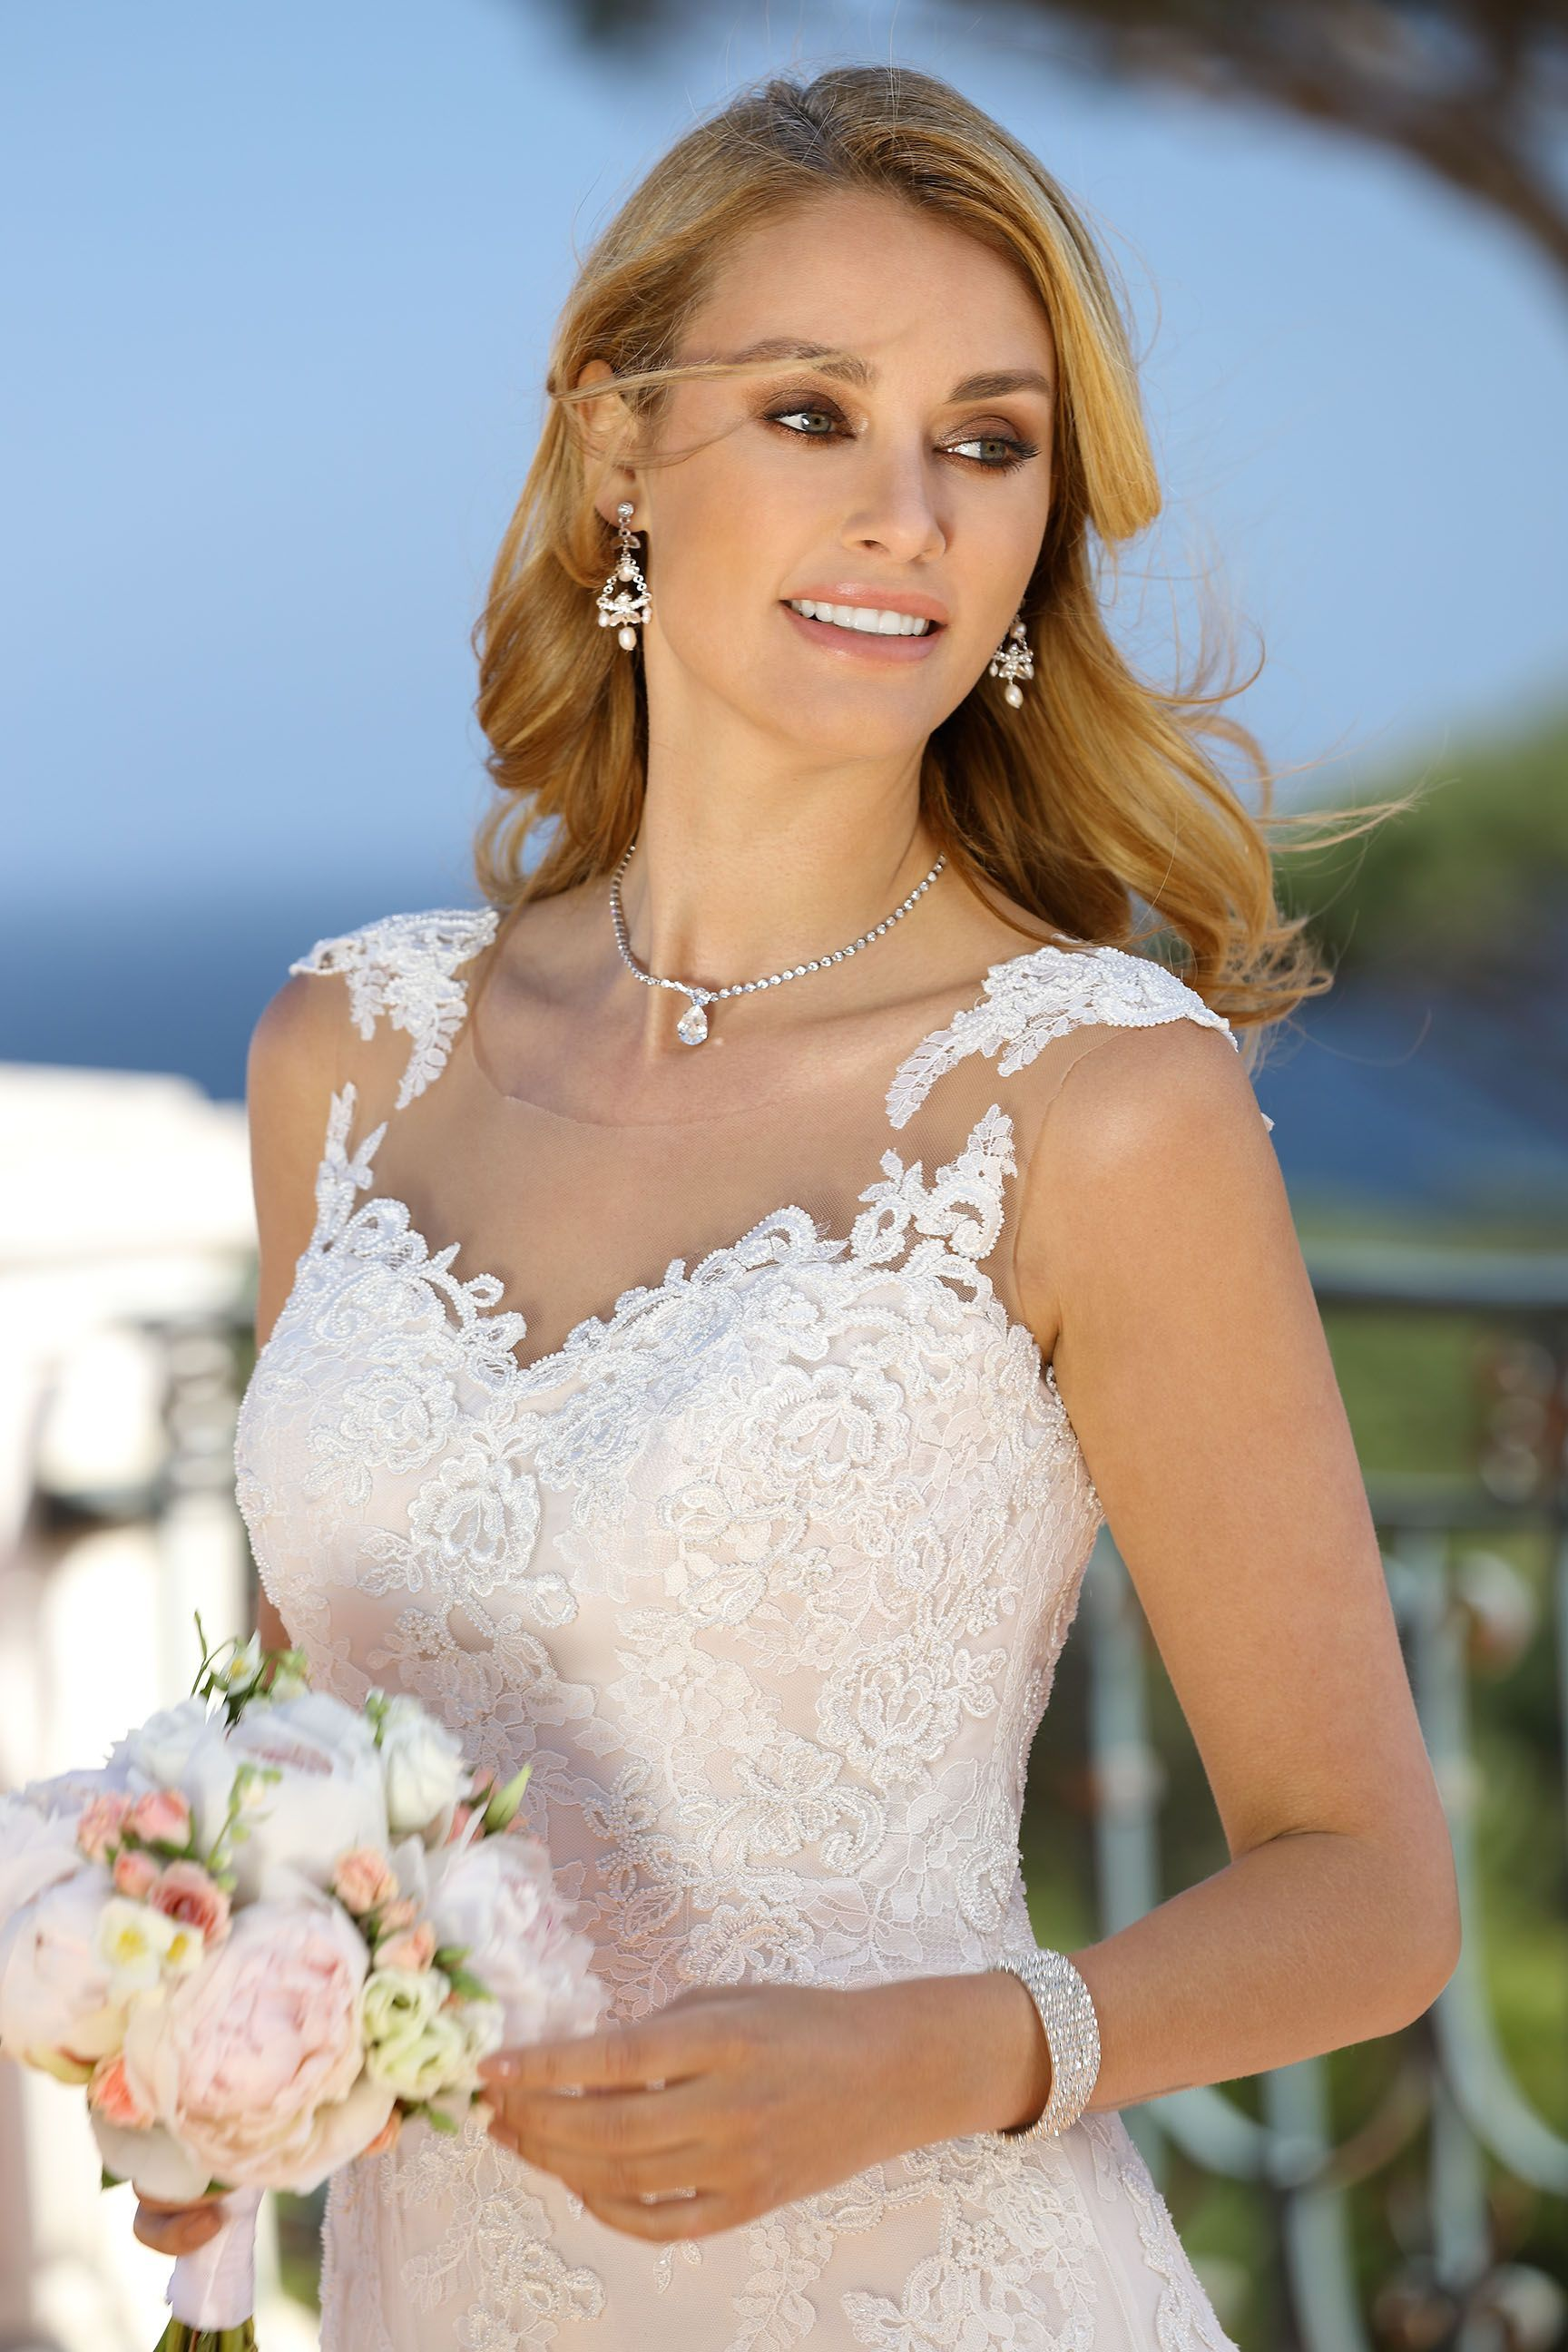 Wedding dress with color  LADYBIRD COLORED Colored wedding dresses by Ladybird Bridal Just not